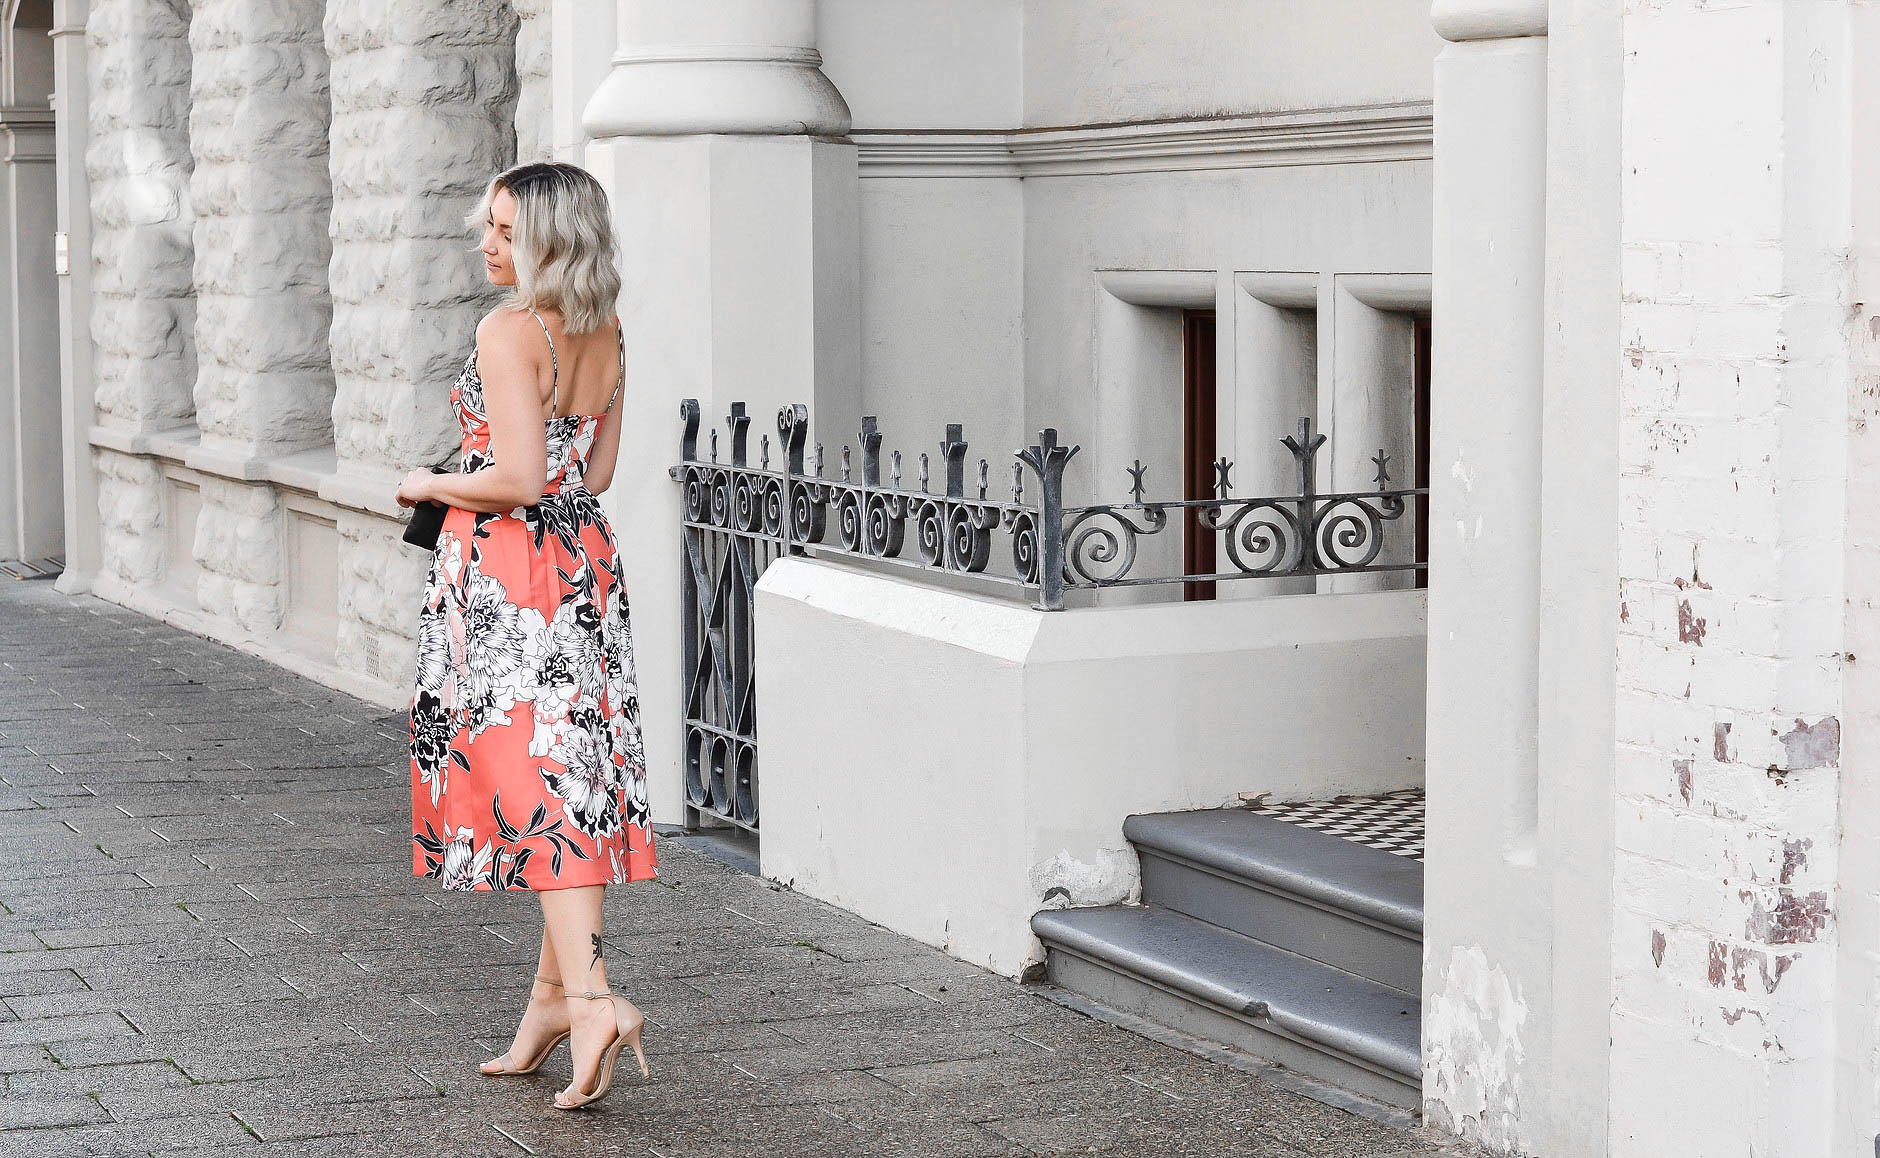 LOOK ONE - SUMMER DRESSY:  Ember Blooms Dress  from  Lock & Key Clothing ,  Tony Bianco  Heels &  Mimco  Pouch